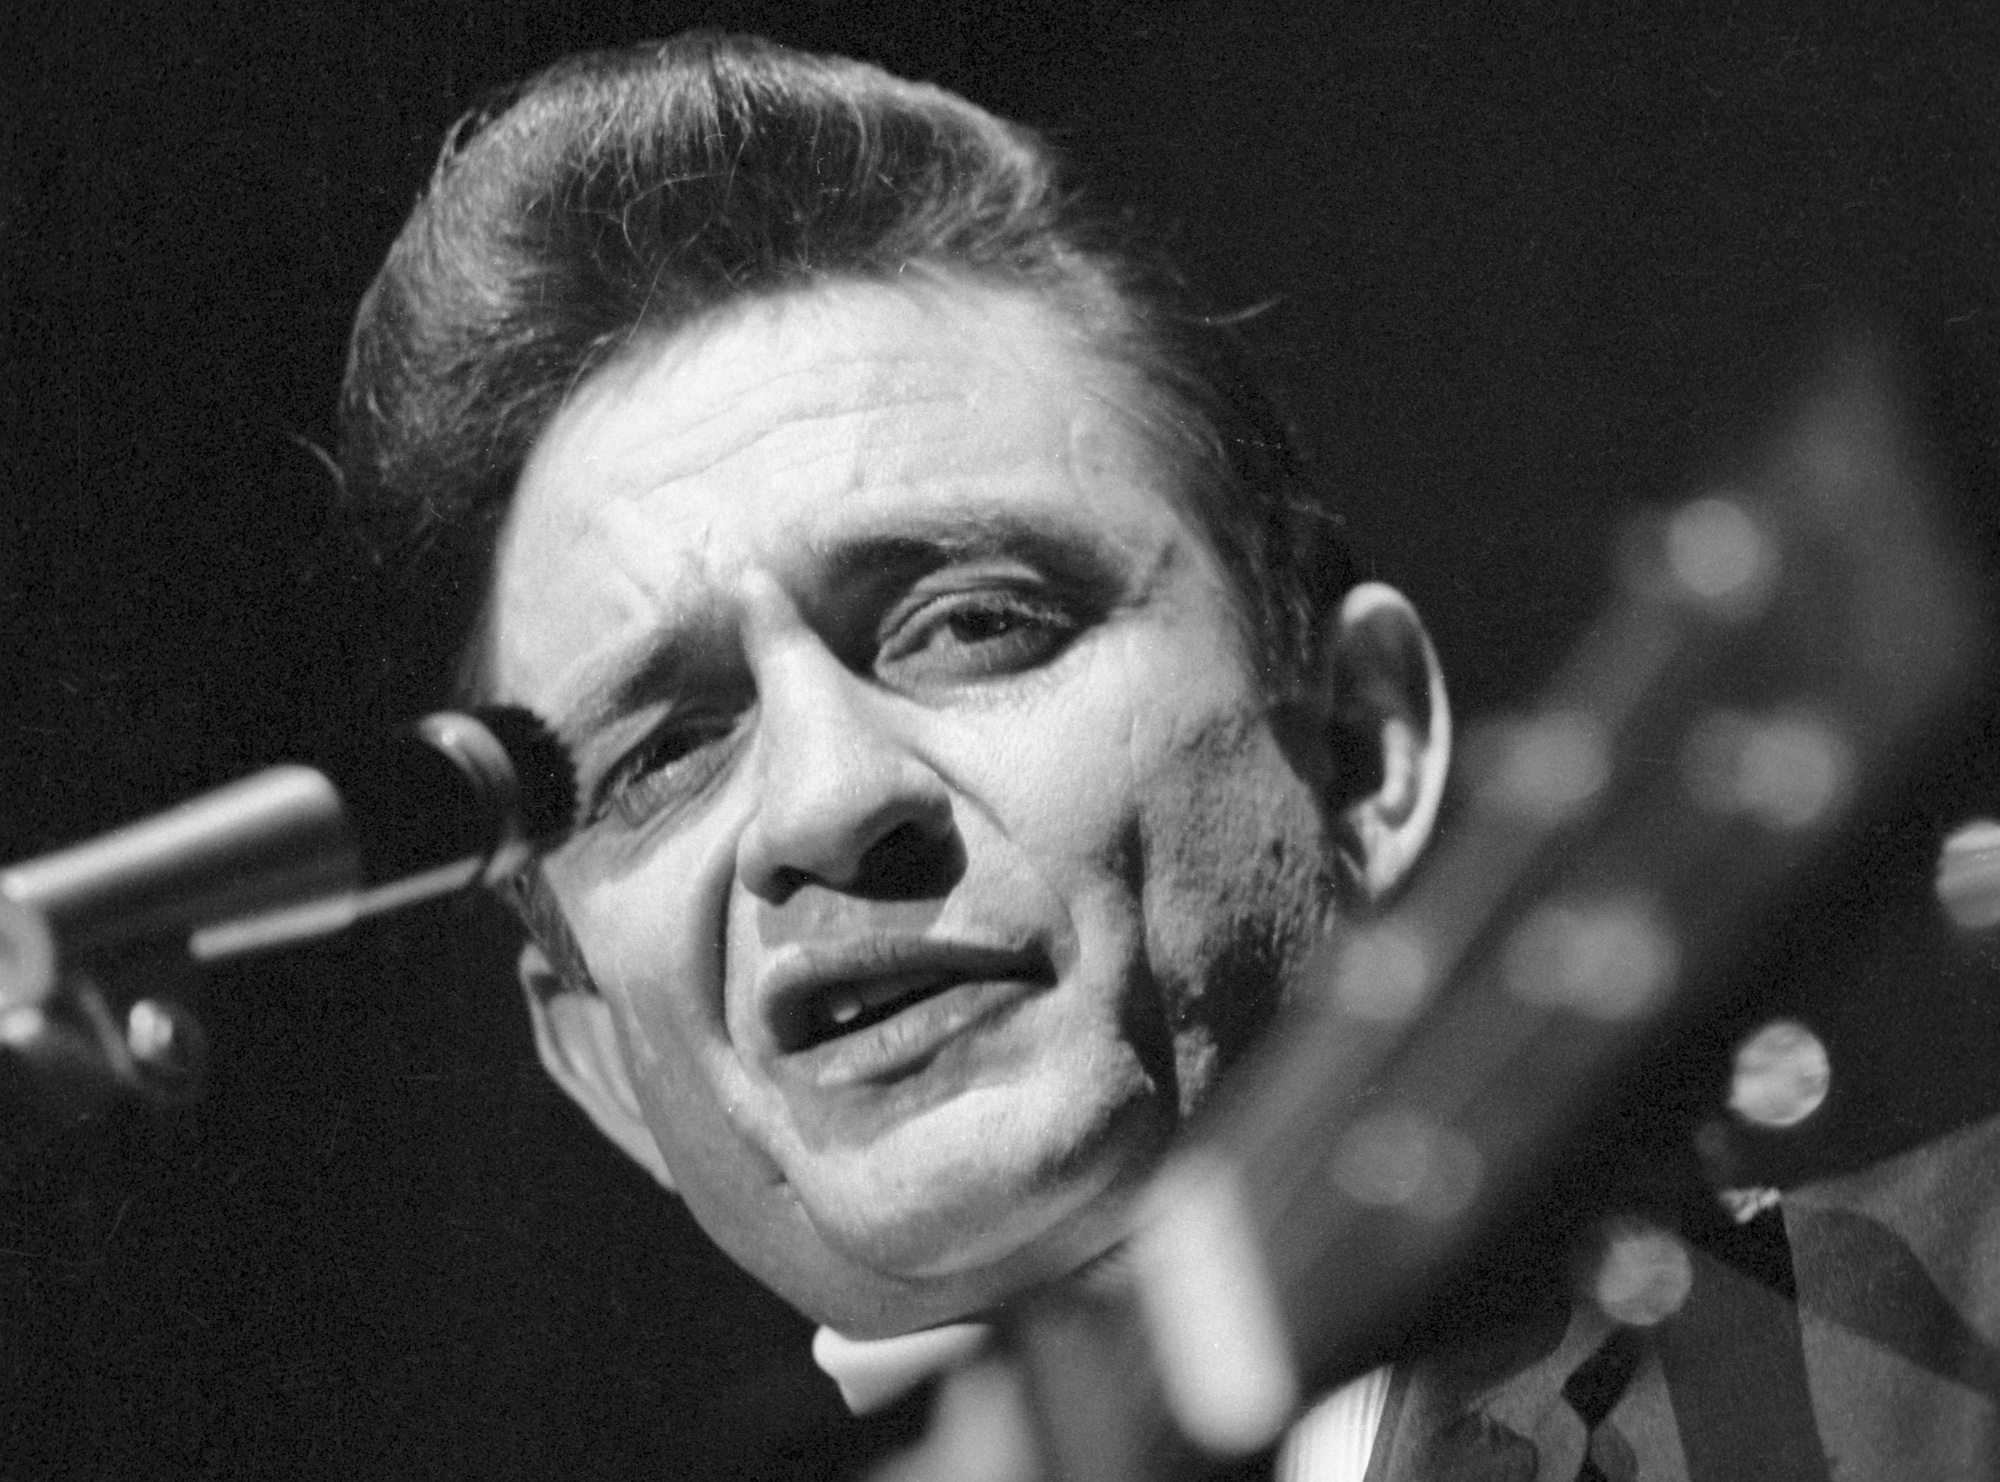 Johnny Cash's Previously Unreleased Live Album From 1968 to Be Unearthed